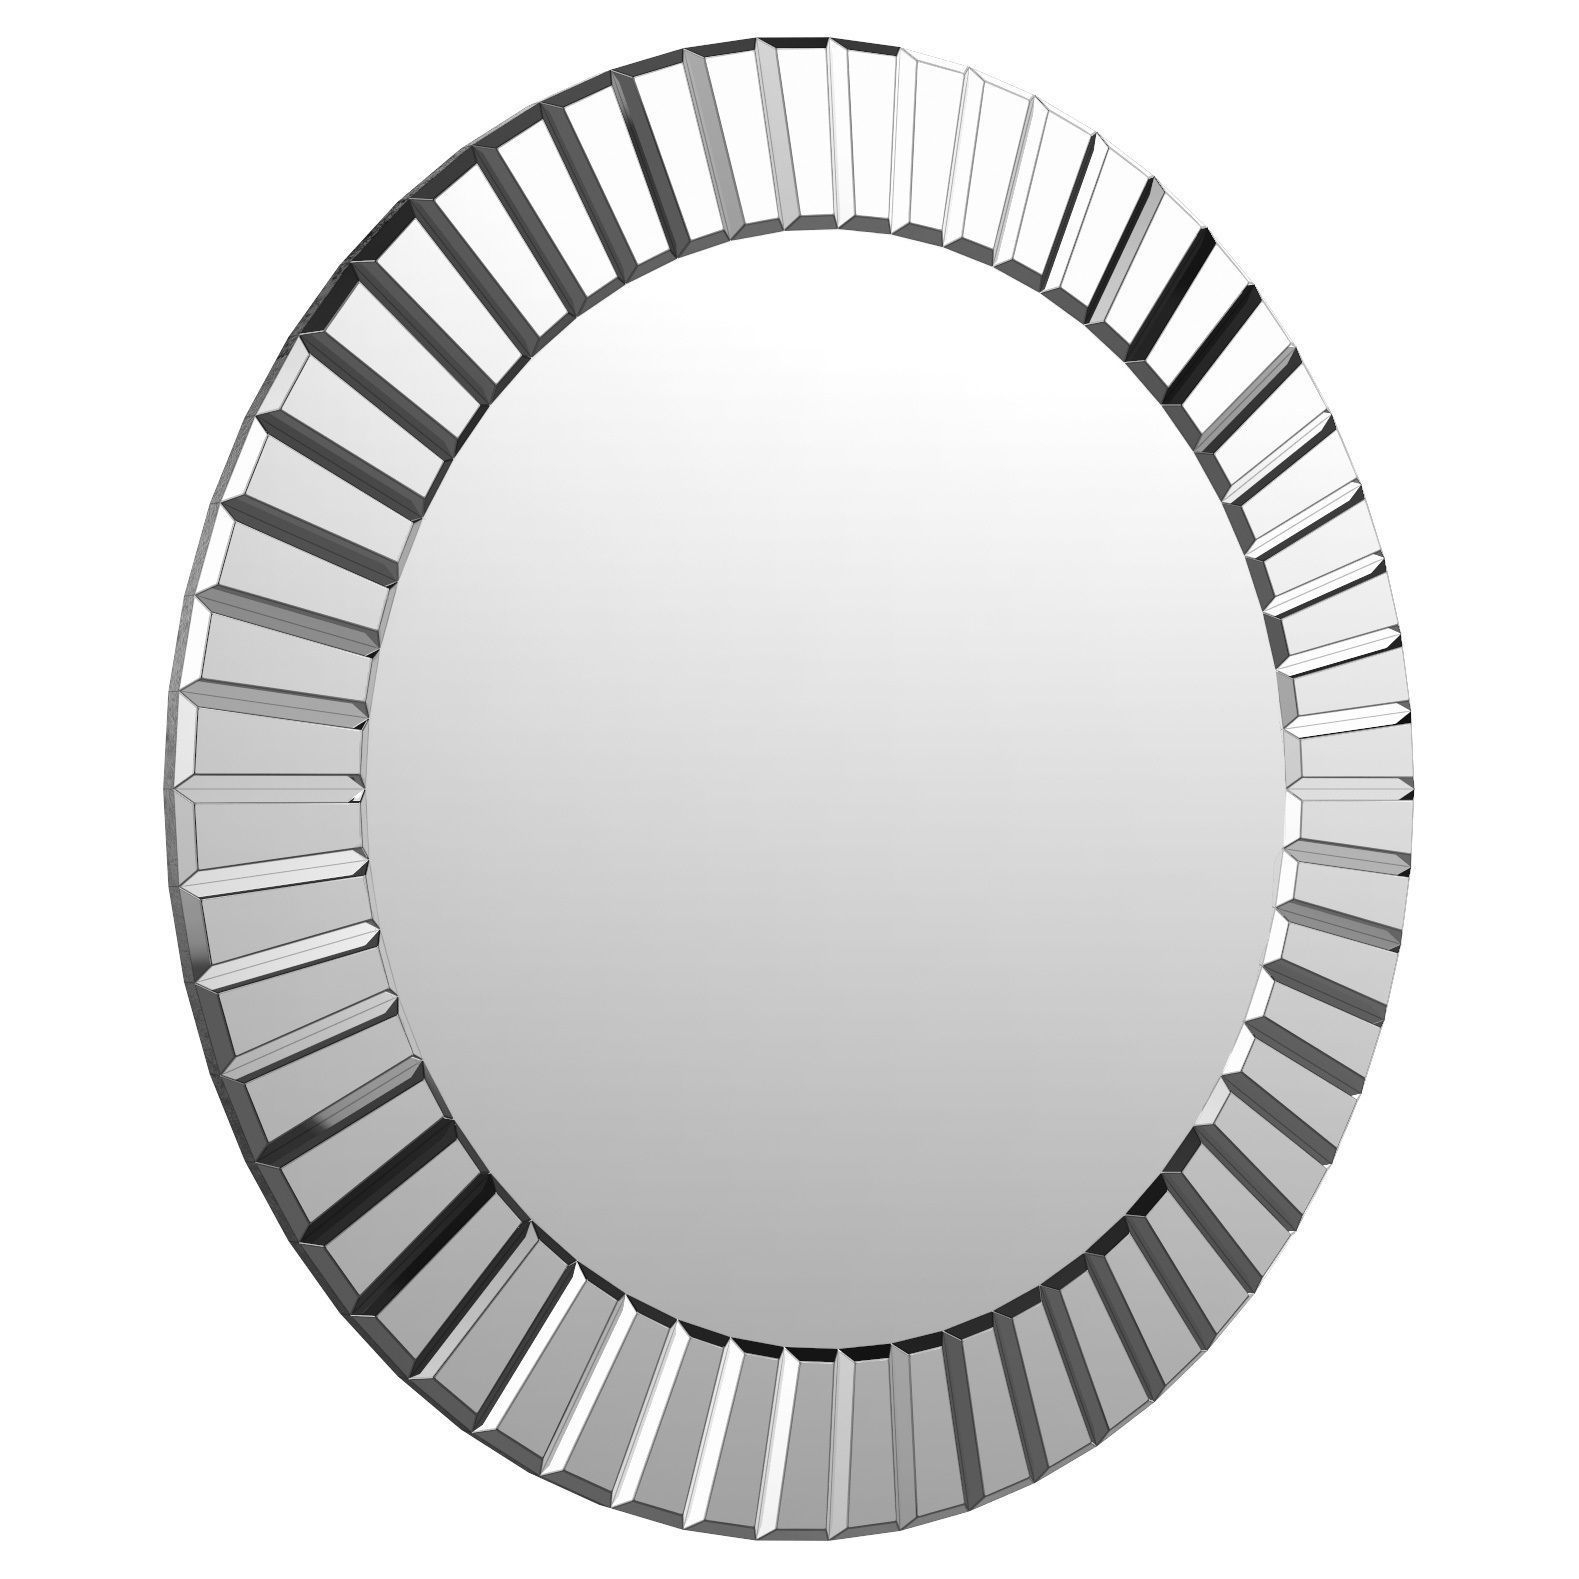 Lidya Frameless Beveled Wall Mirror Wlao2357 | 3d Model For Lidya Frameless Beveled Wall Mirrors (View 2 of 30)